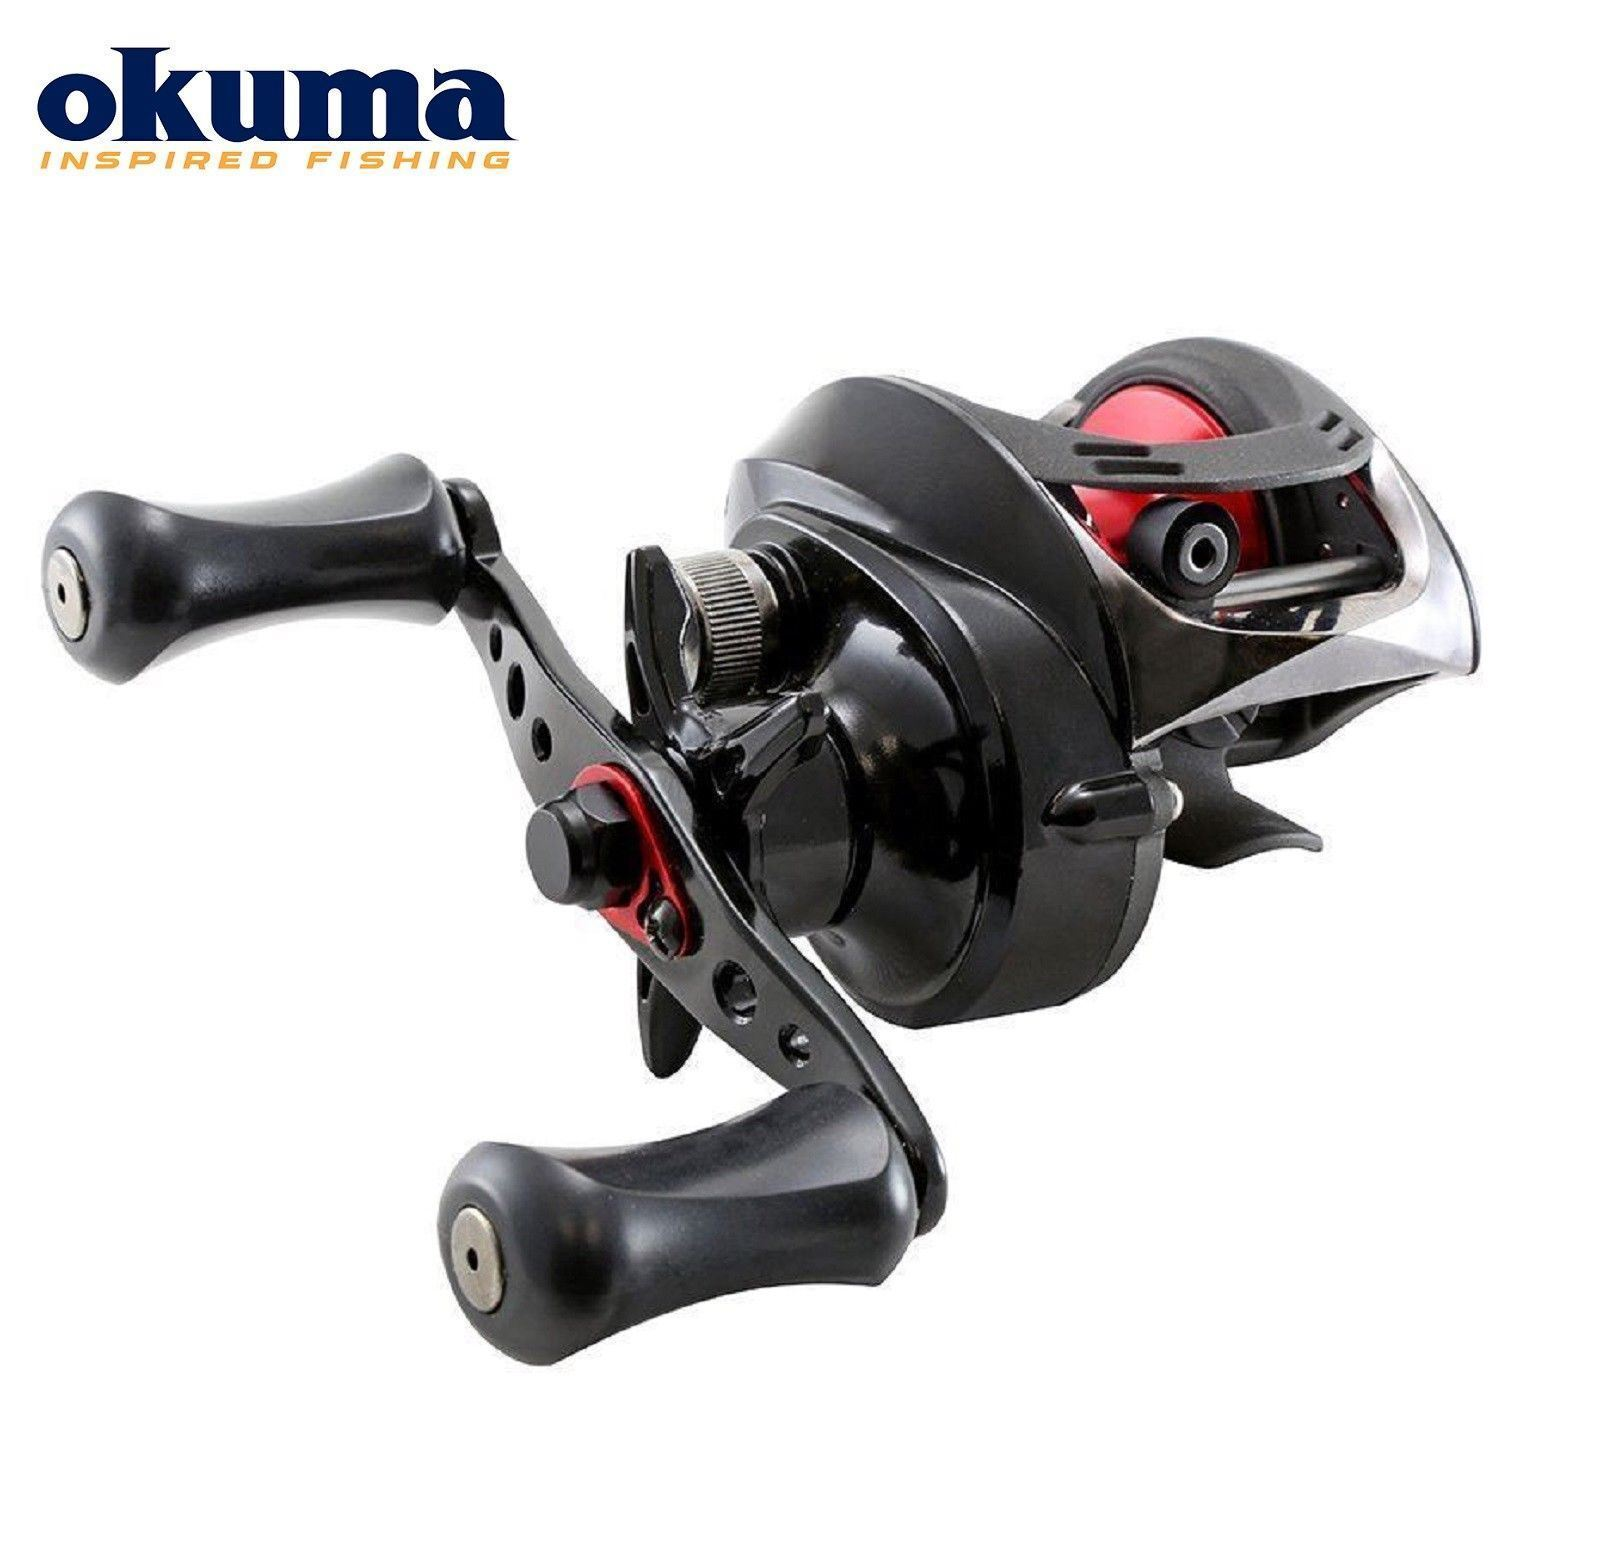 Okuma Ceymar Low Profile Baitcasting Sea Fishing Reel (Left or Right Hand)